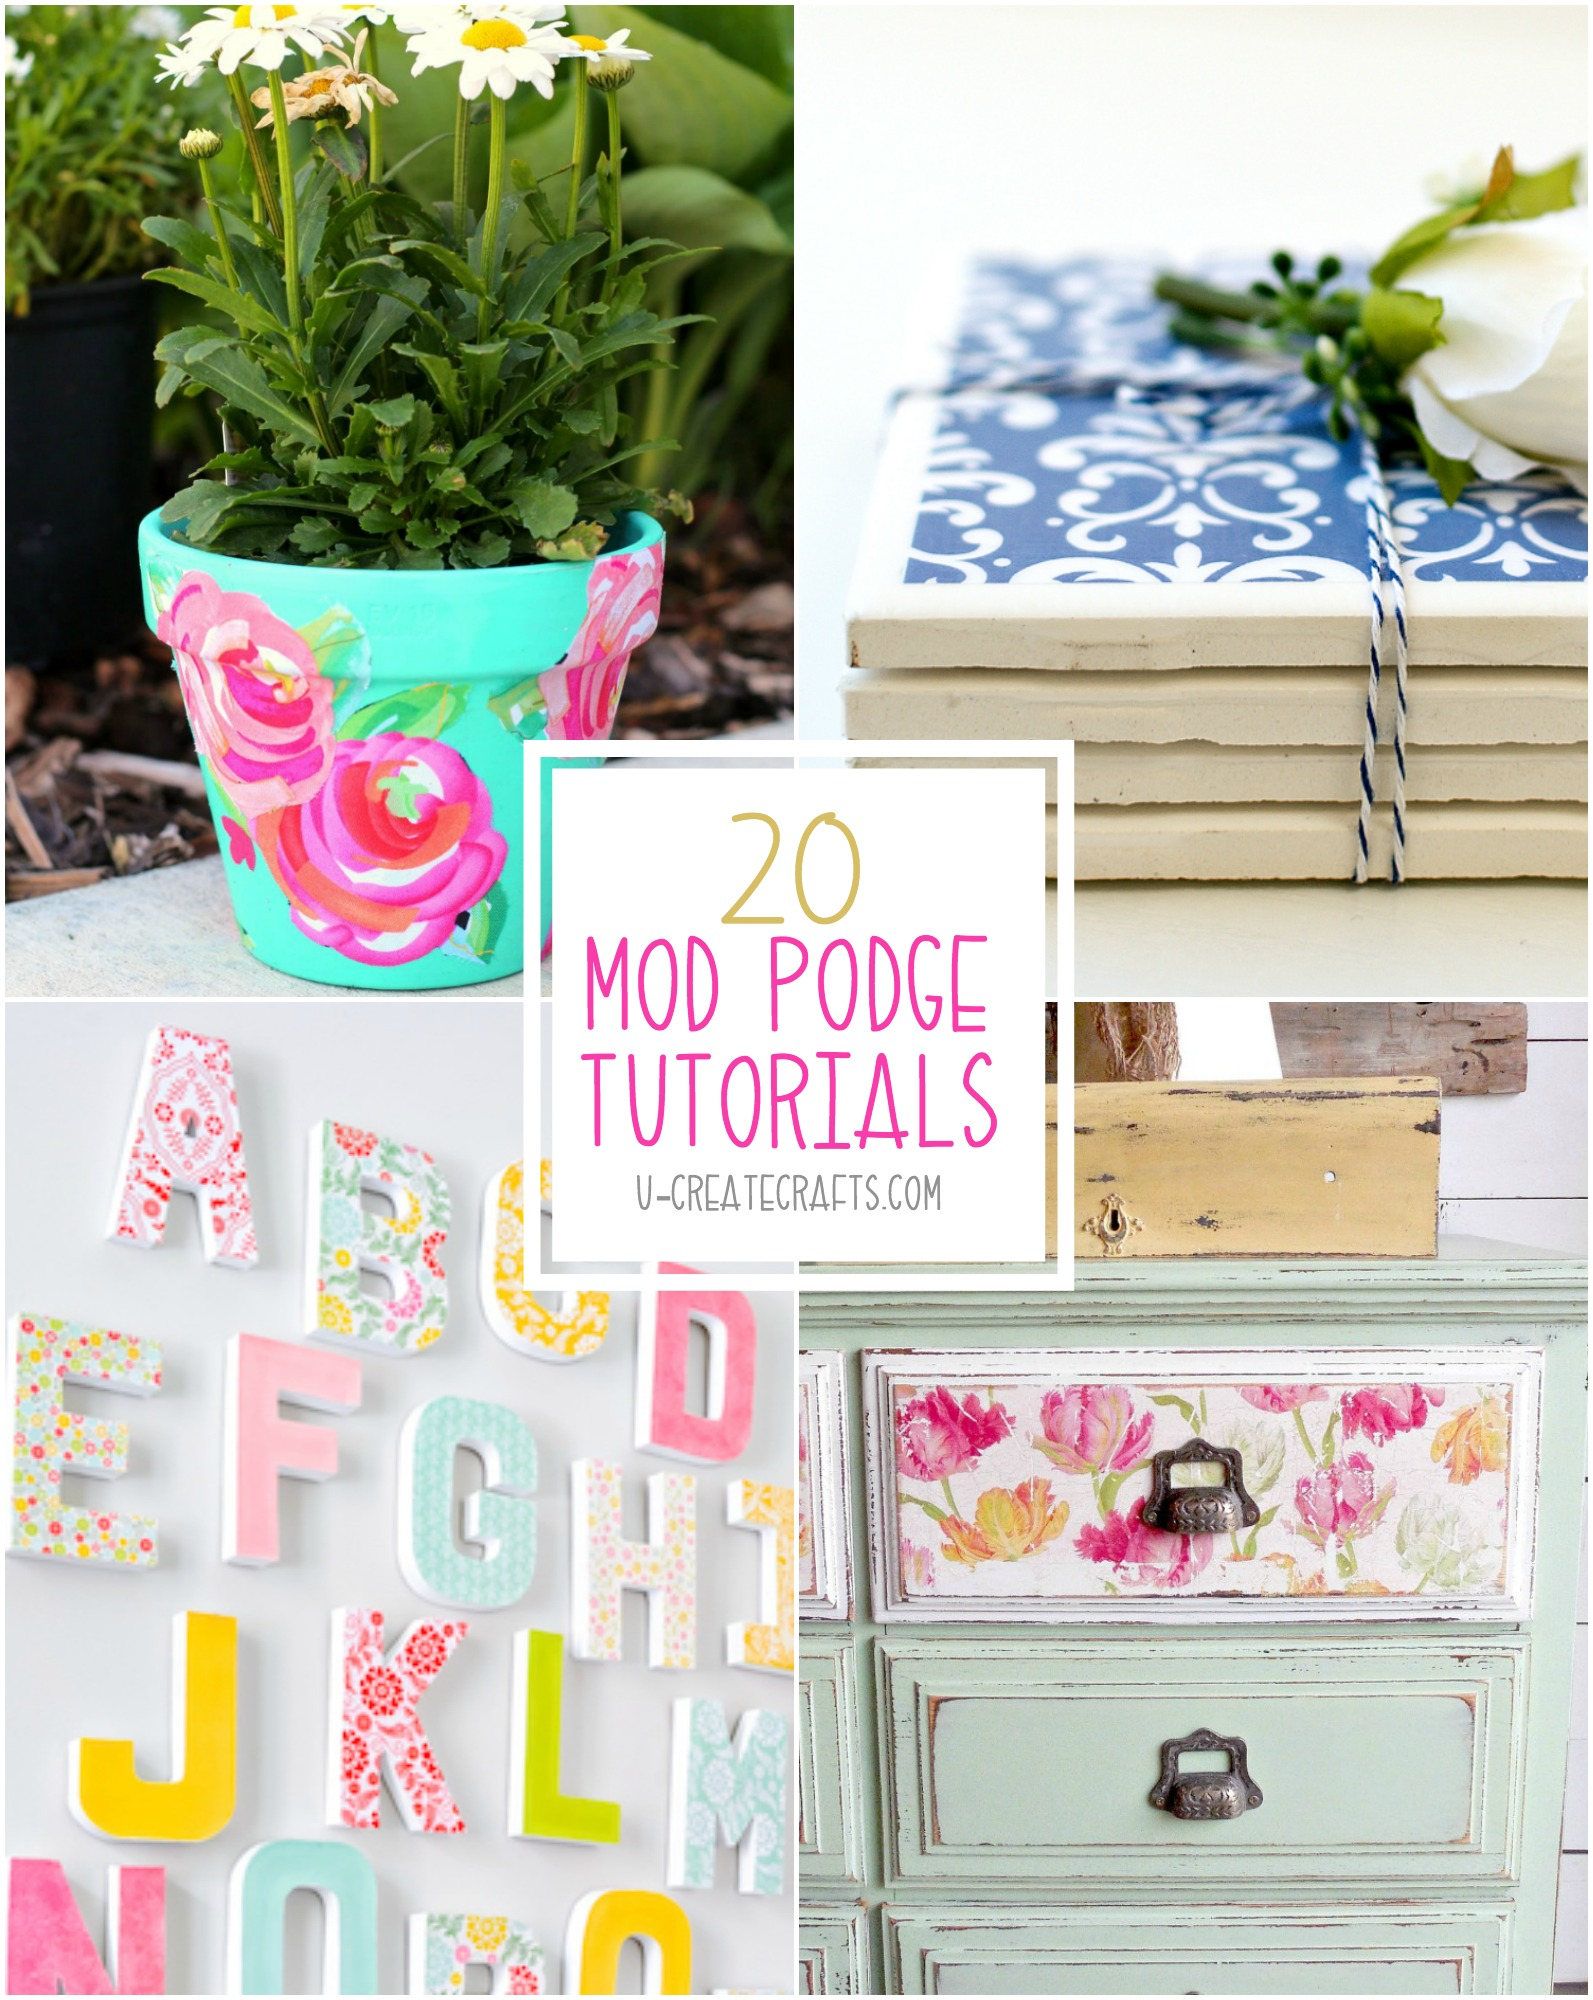 Tons of Mod Podge Tutorials u-createcrafts.com